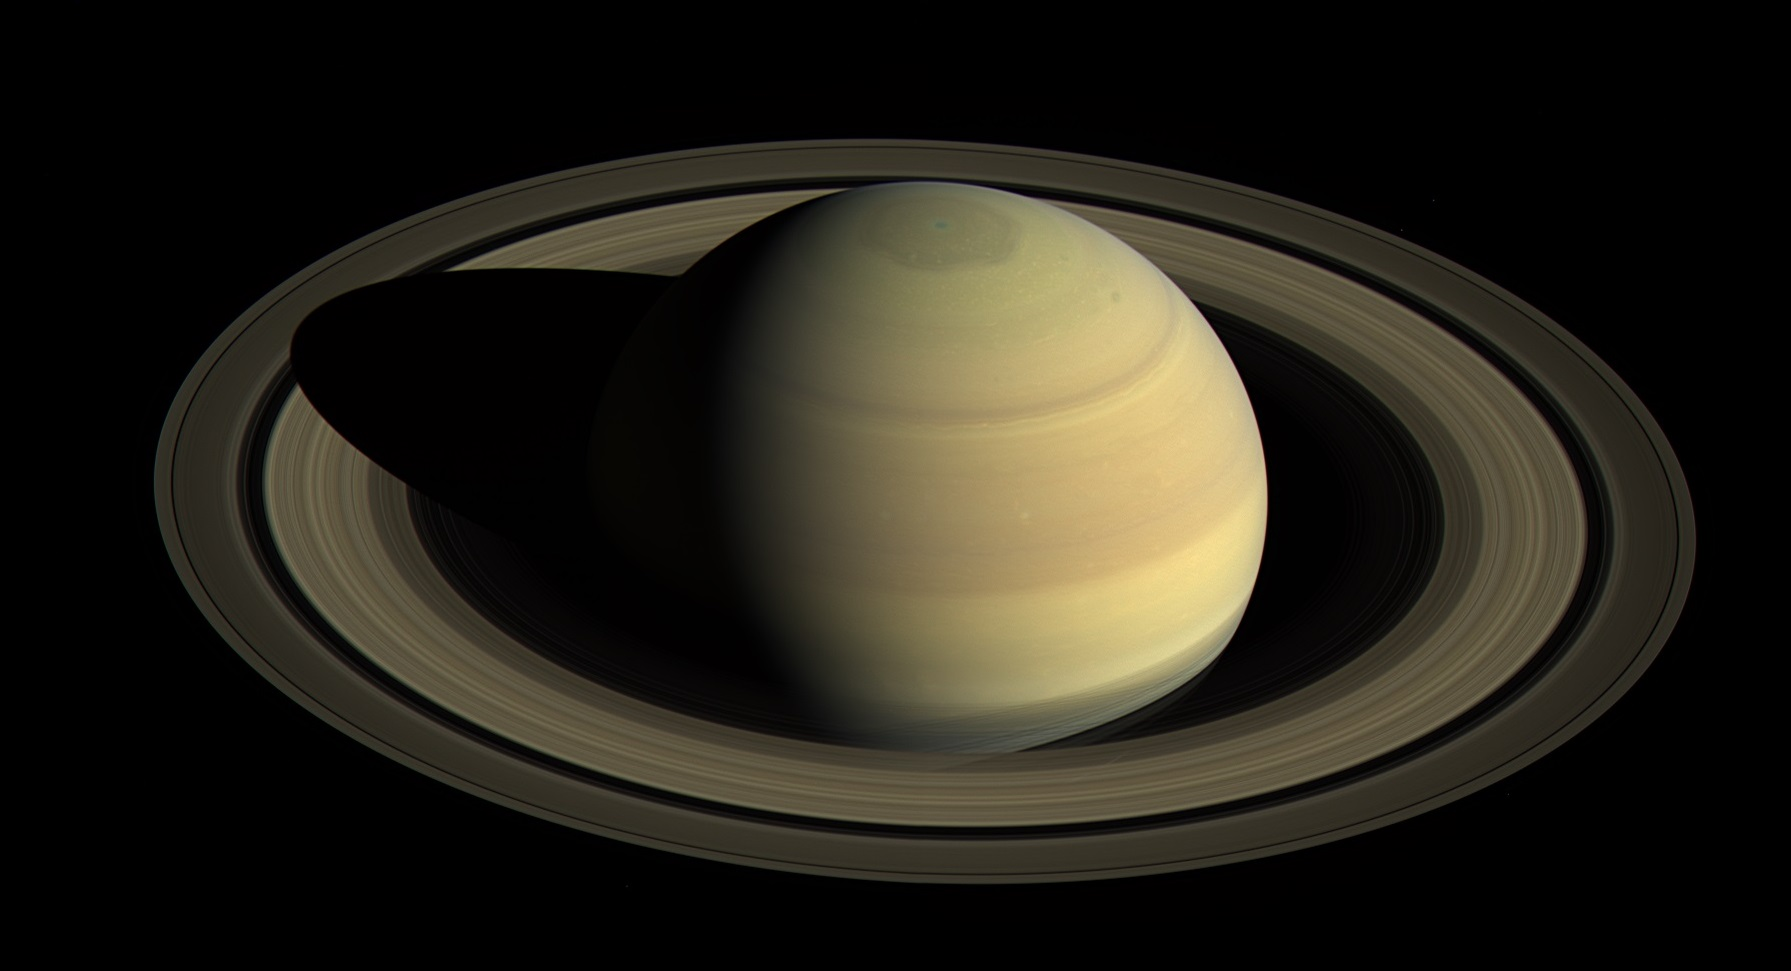 Saturn surpasses Jupiter as 'moon king'